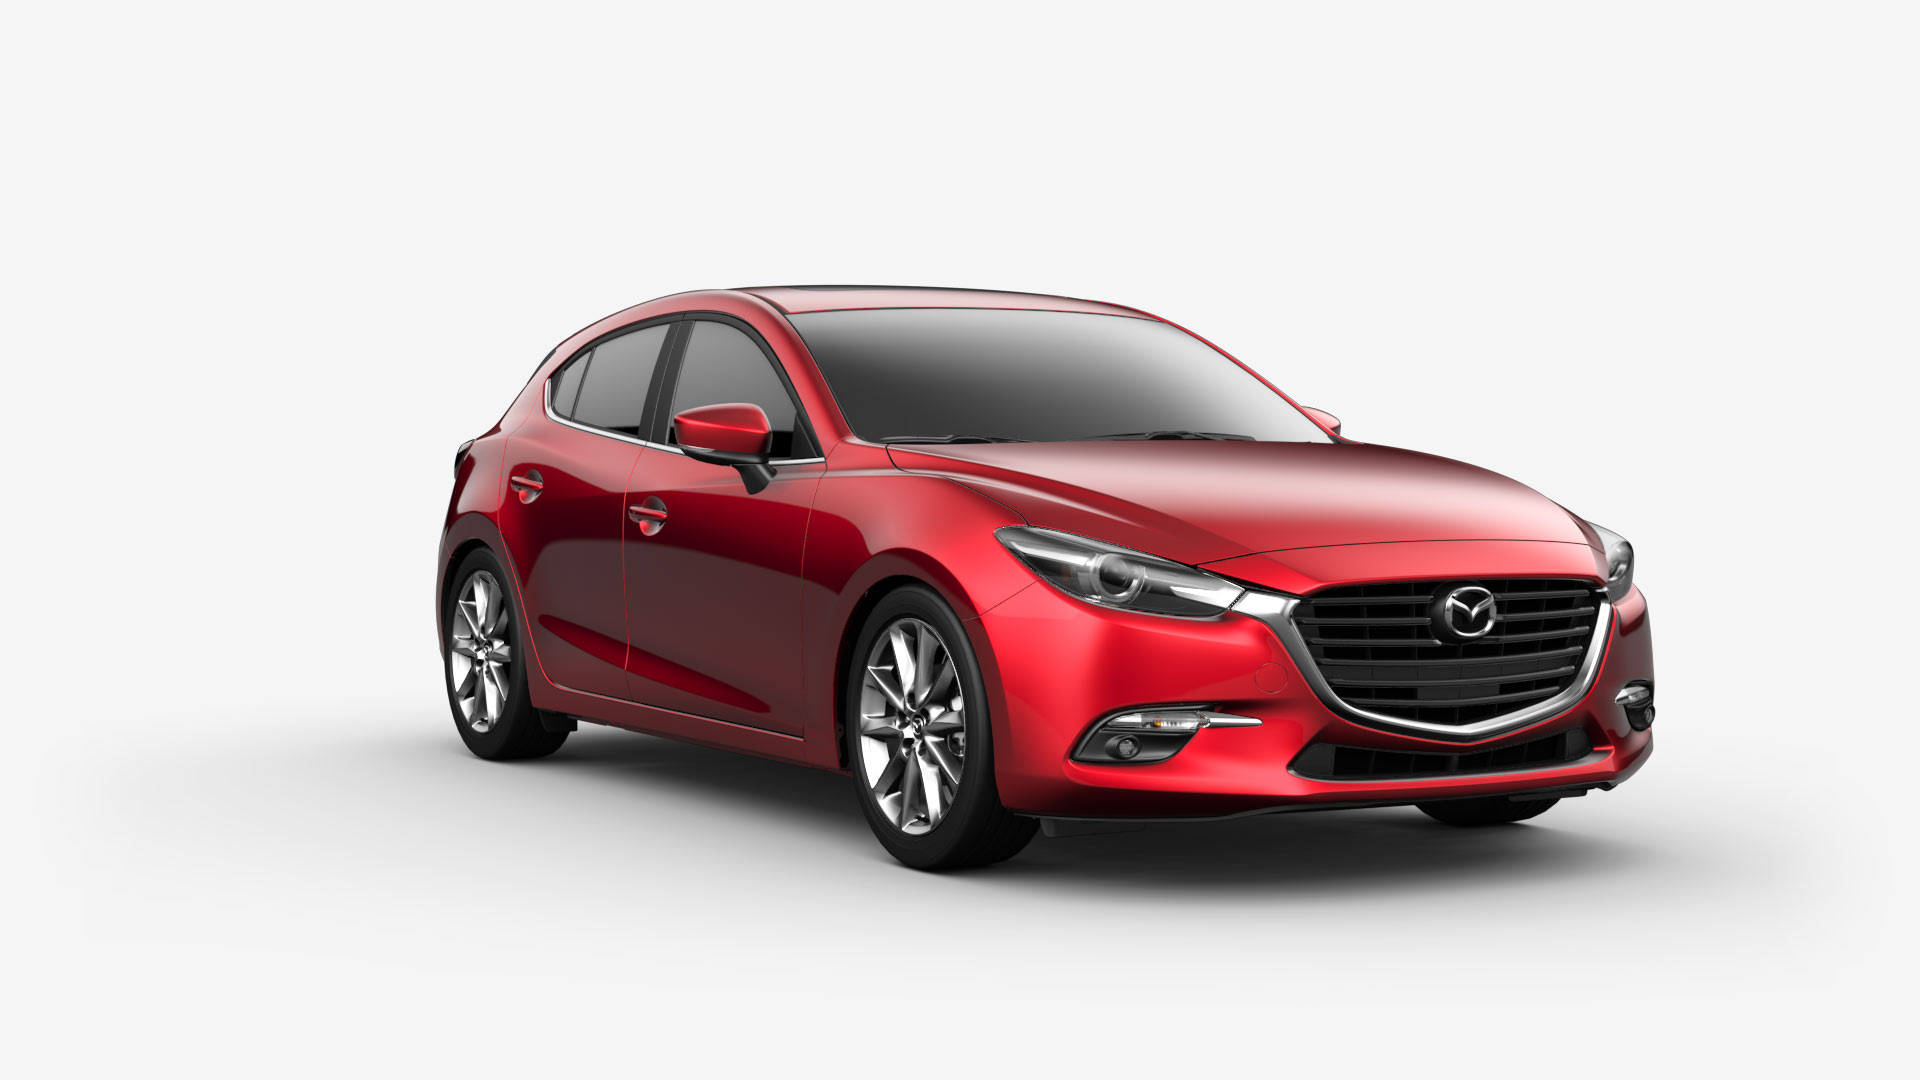 Mazda 3 Owners Manual: Blind Spot Monitoring (BSM) System